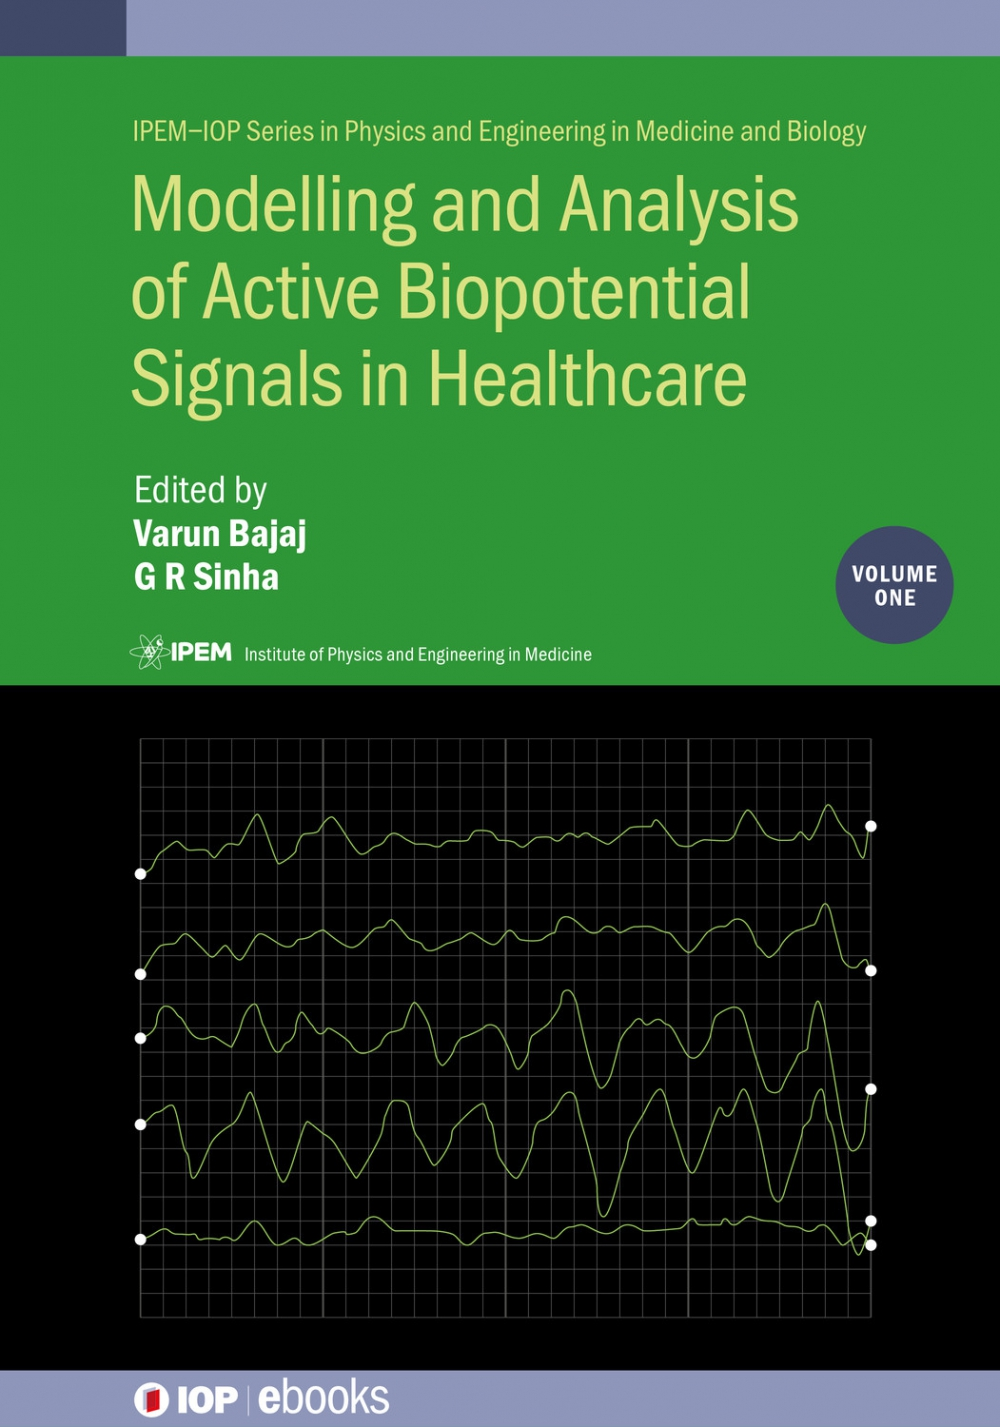 Jacket Image For: Modelling and Analysis of Active Biopotential Signals in Healthcare, Volume 1